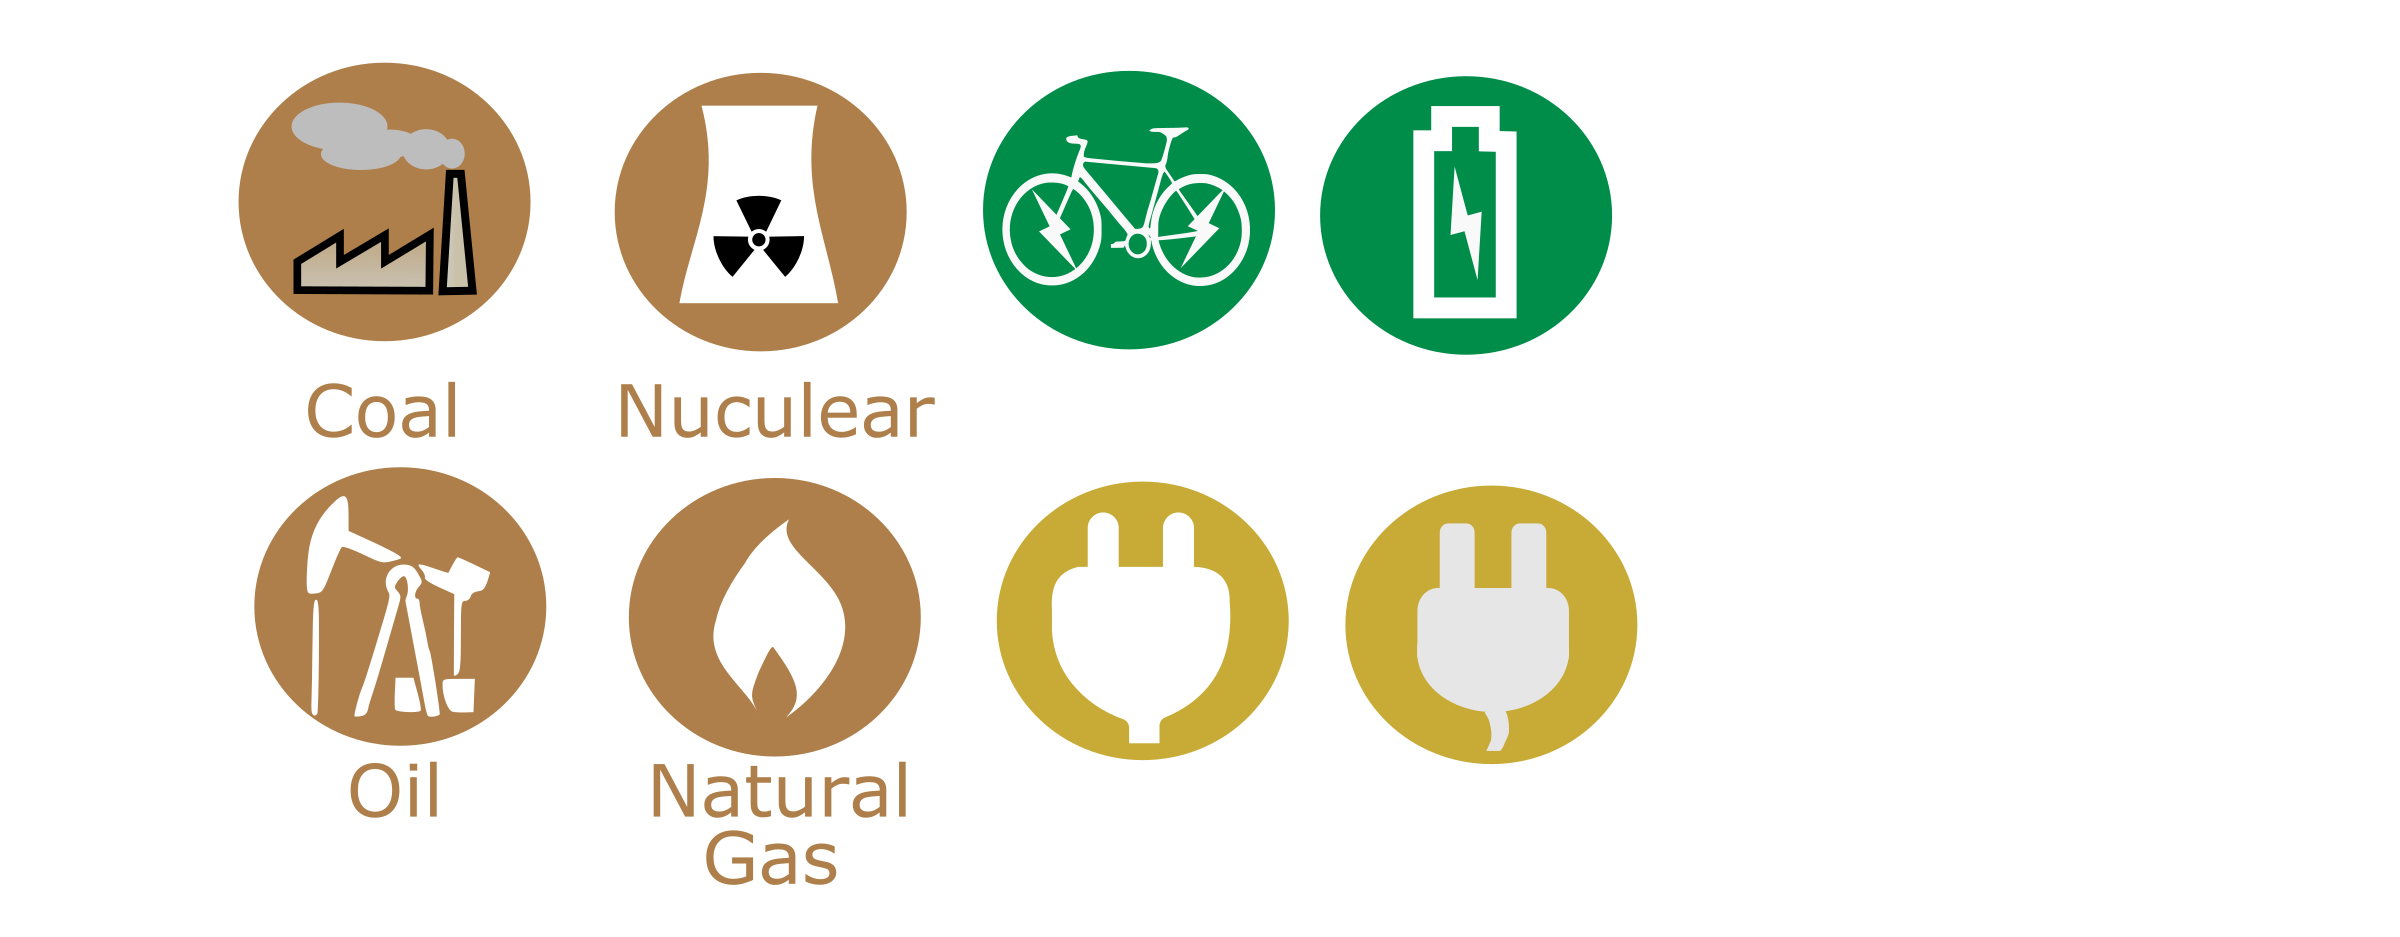 alternative icons power sources by elconomeno@email.com